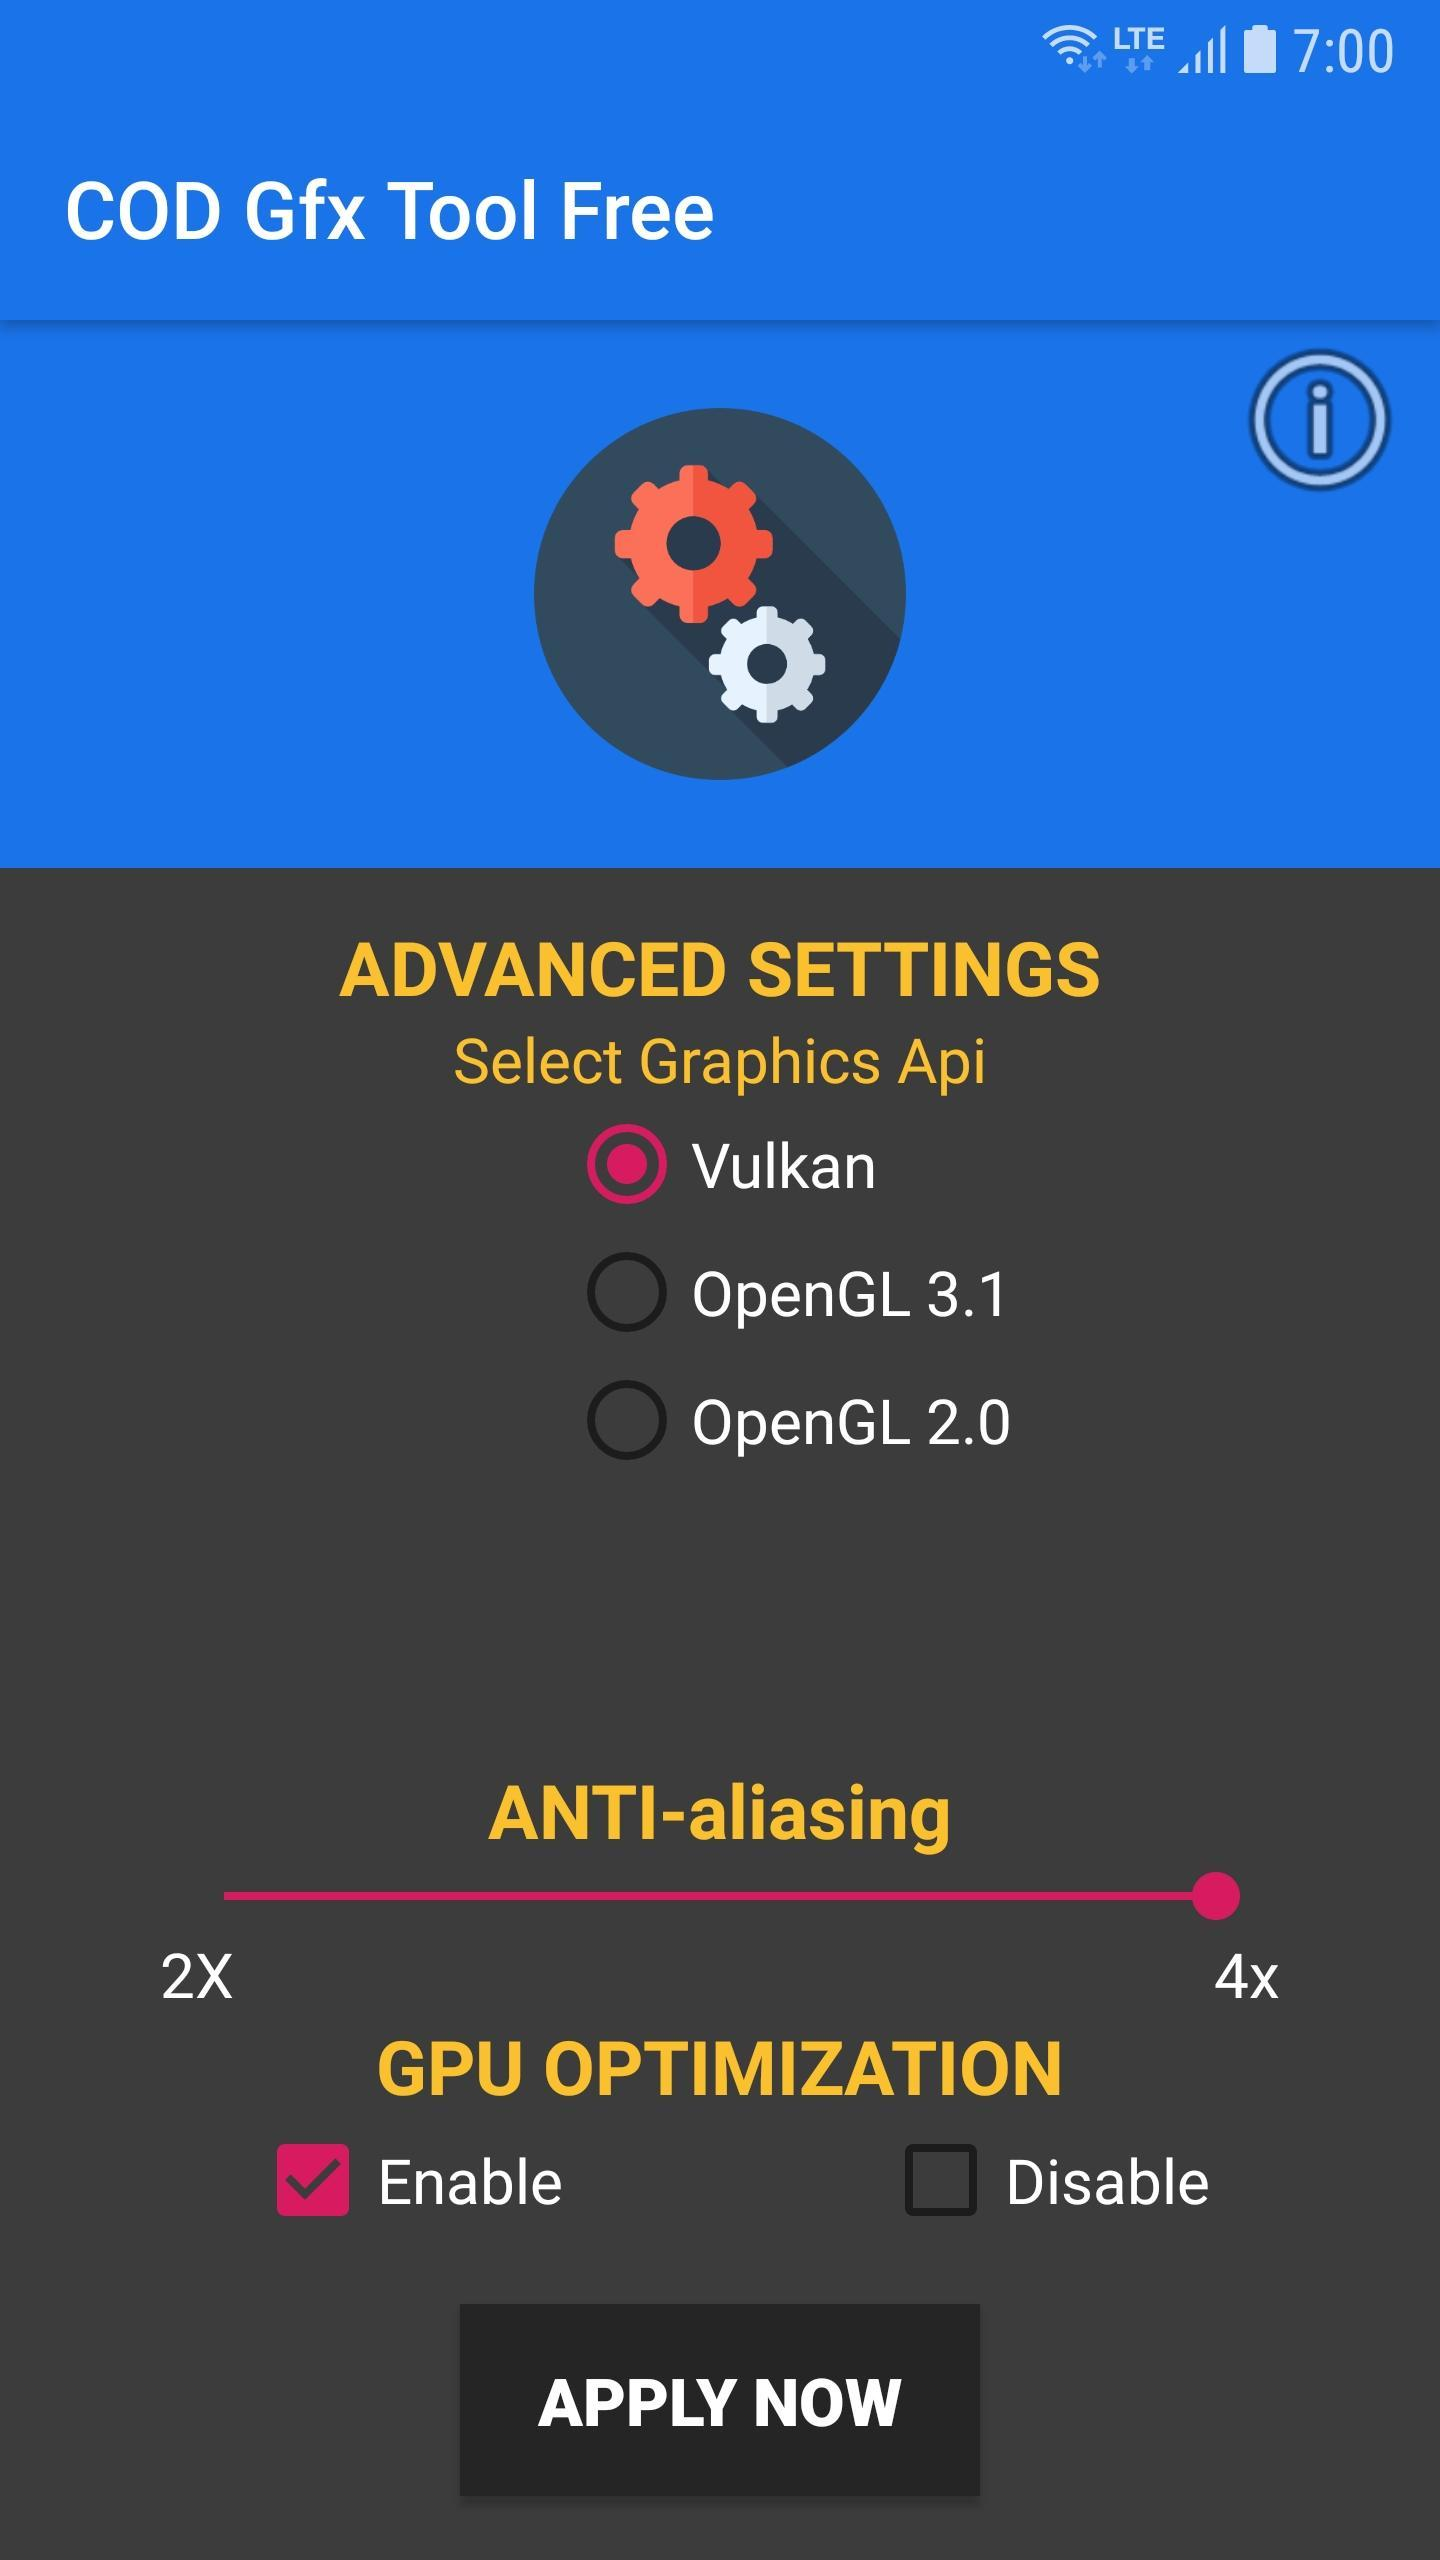 COD Gfx Tool Free🔧 (NO BAN) for Android - APK Download